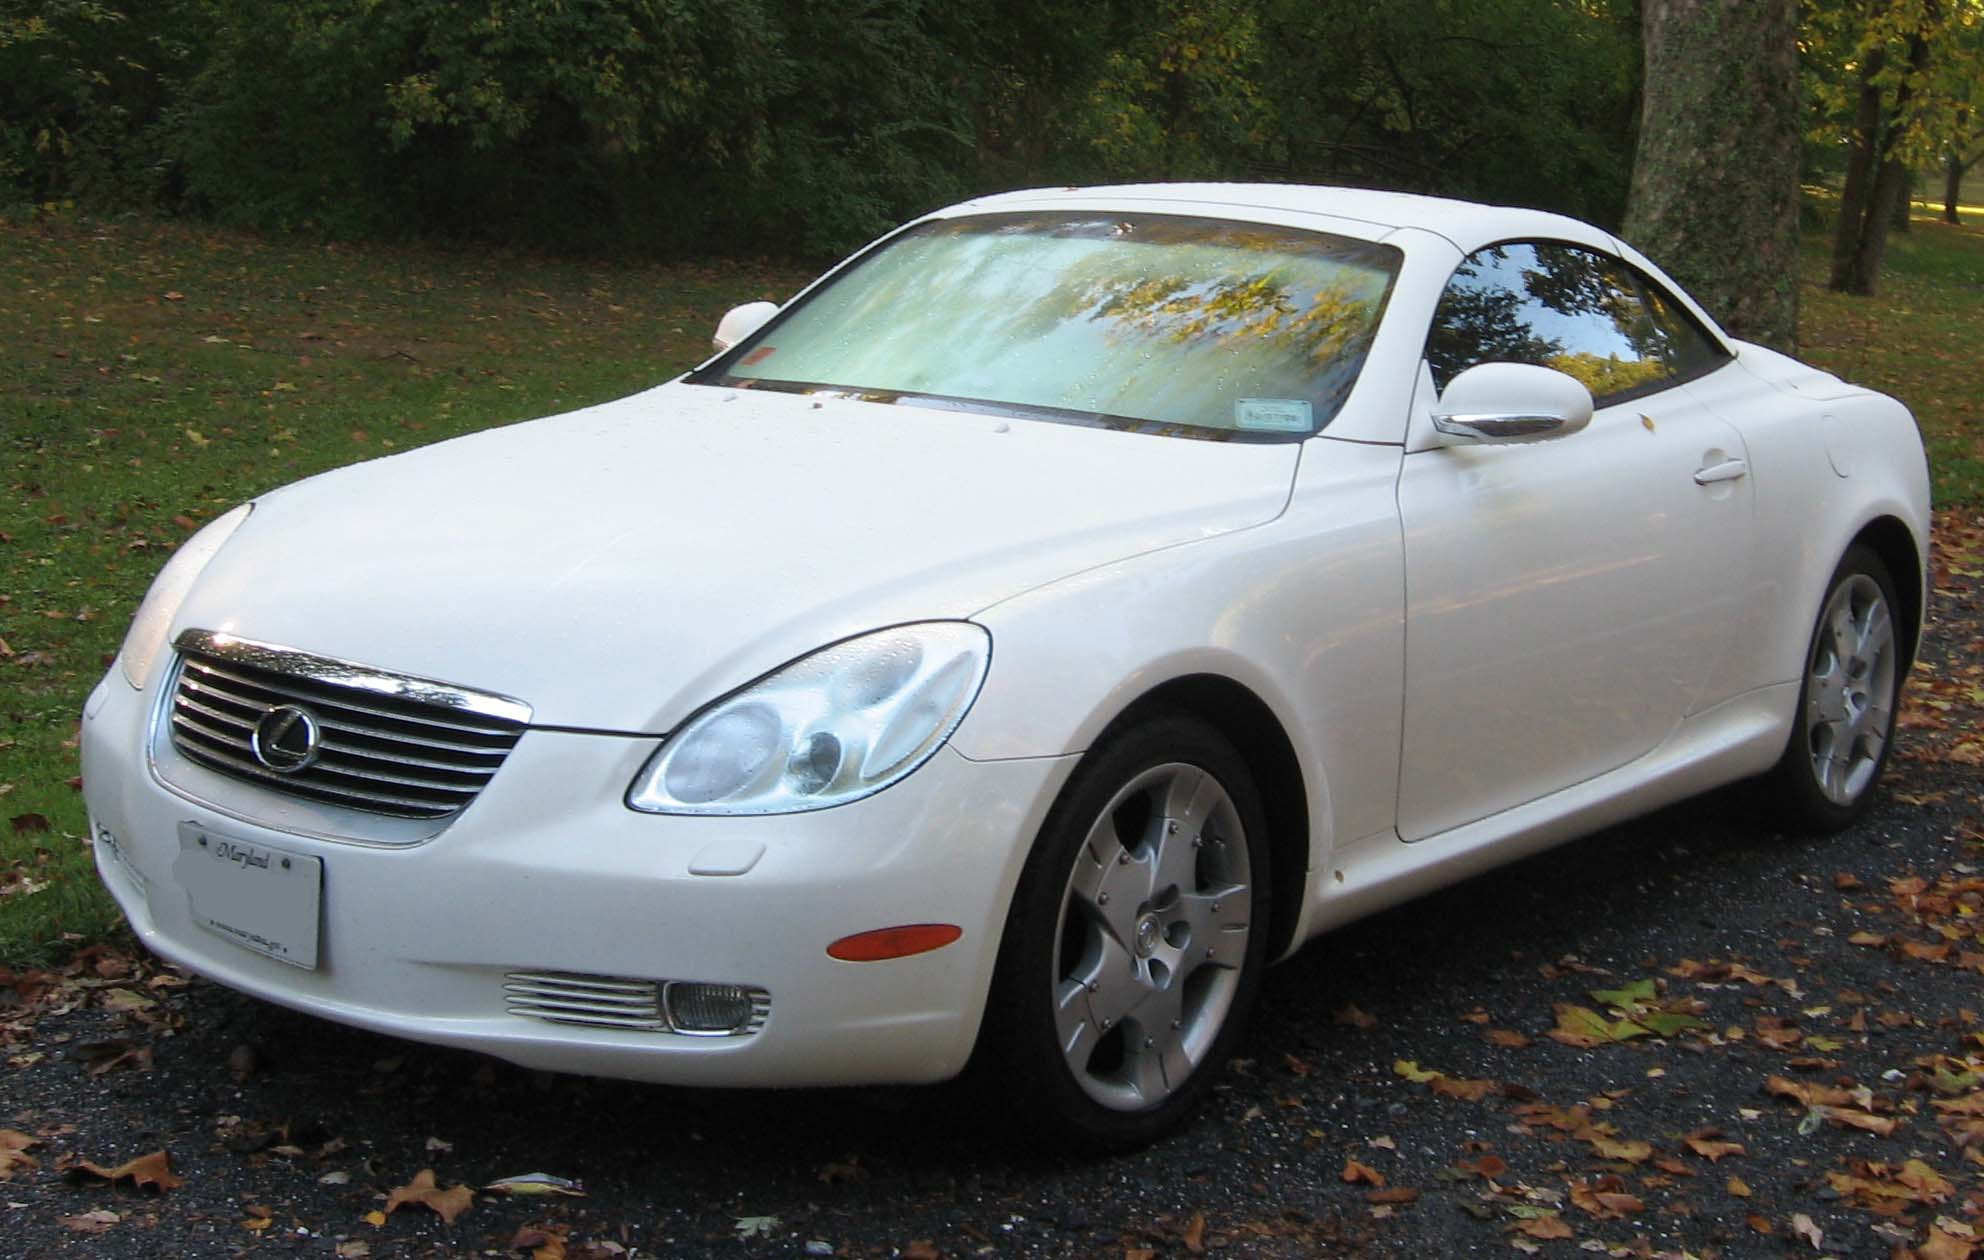 LEXUS SC Review and photos